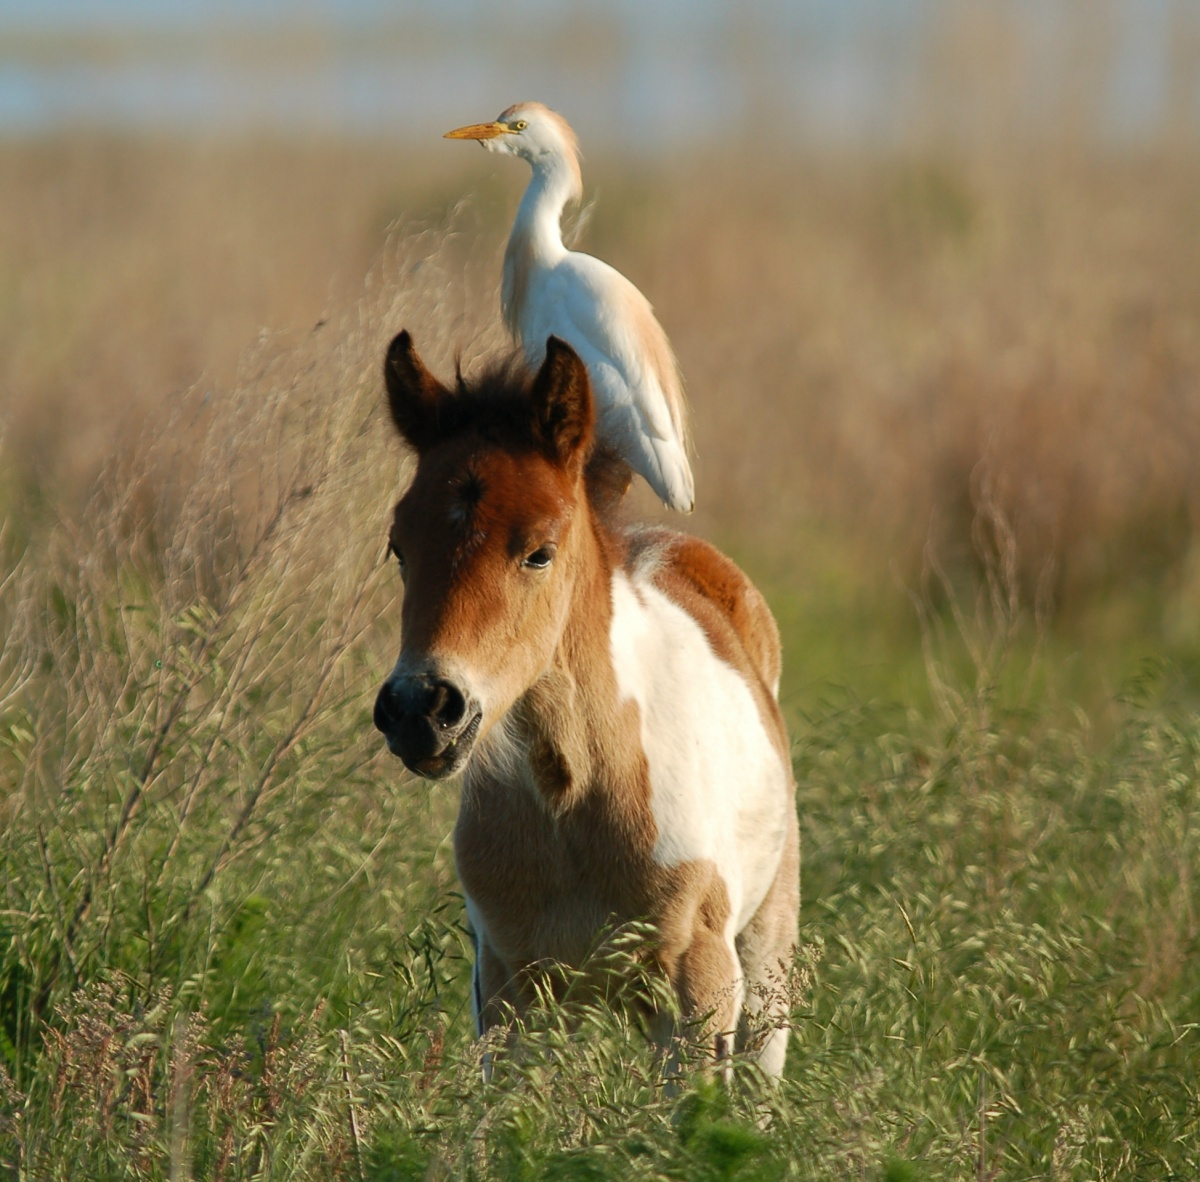 White bird perched on the back of a small brown haired pony in the middle of a grassy field